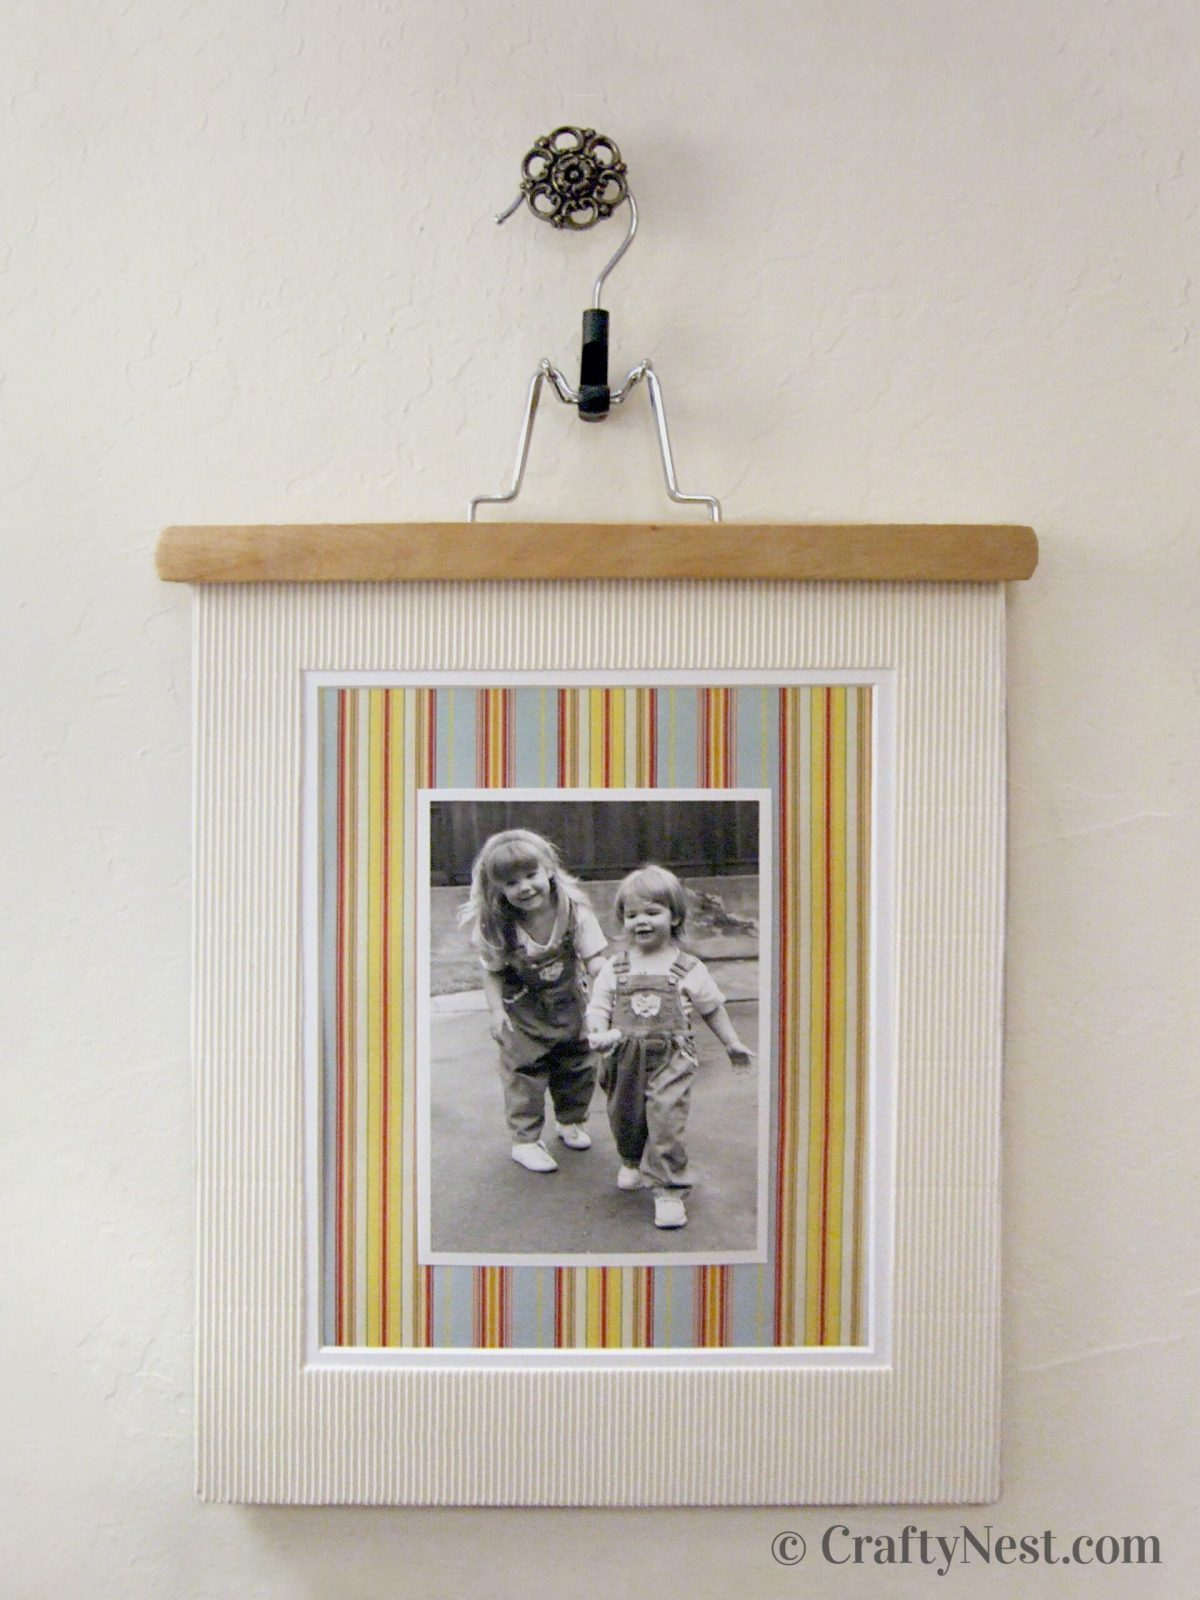 Photo framed with a mat, hanging from a pants hanger, photo